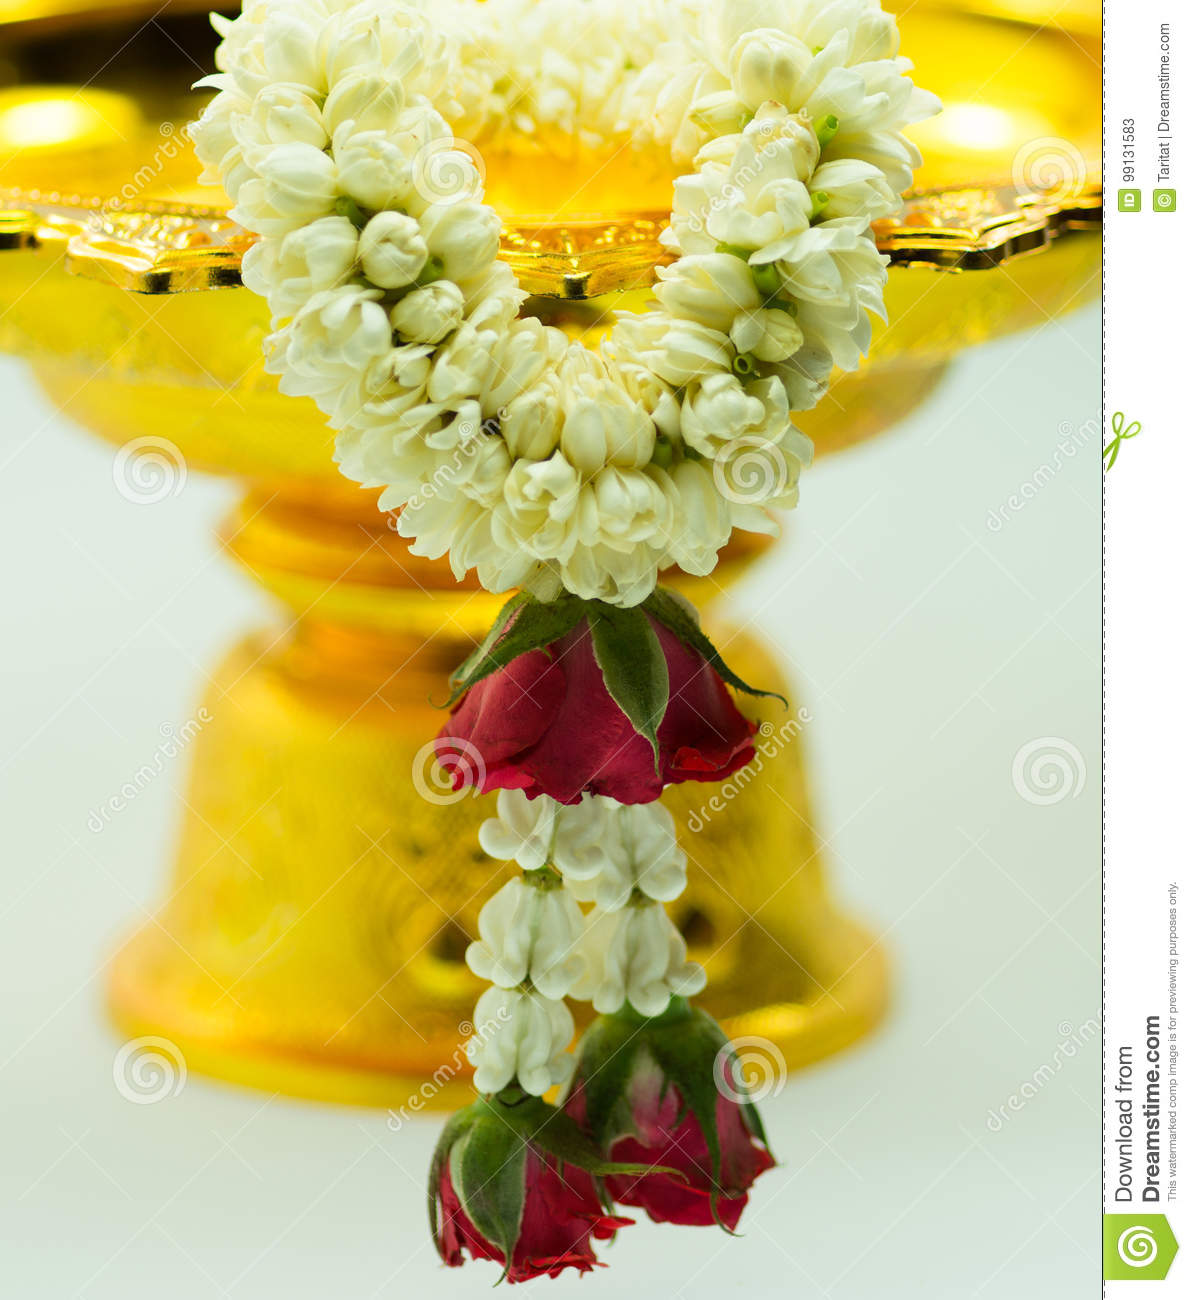 Silver And Gold Pedestal And Jasmine Garland Stock Image